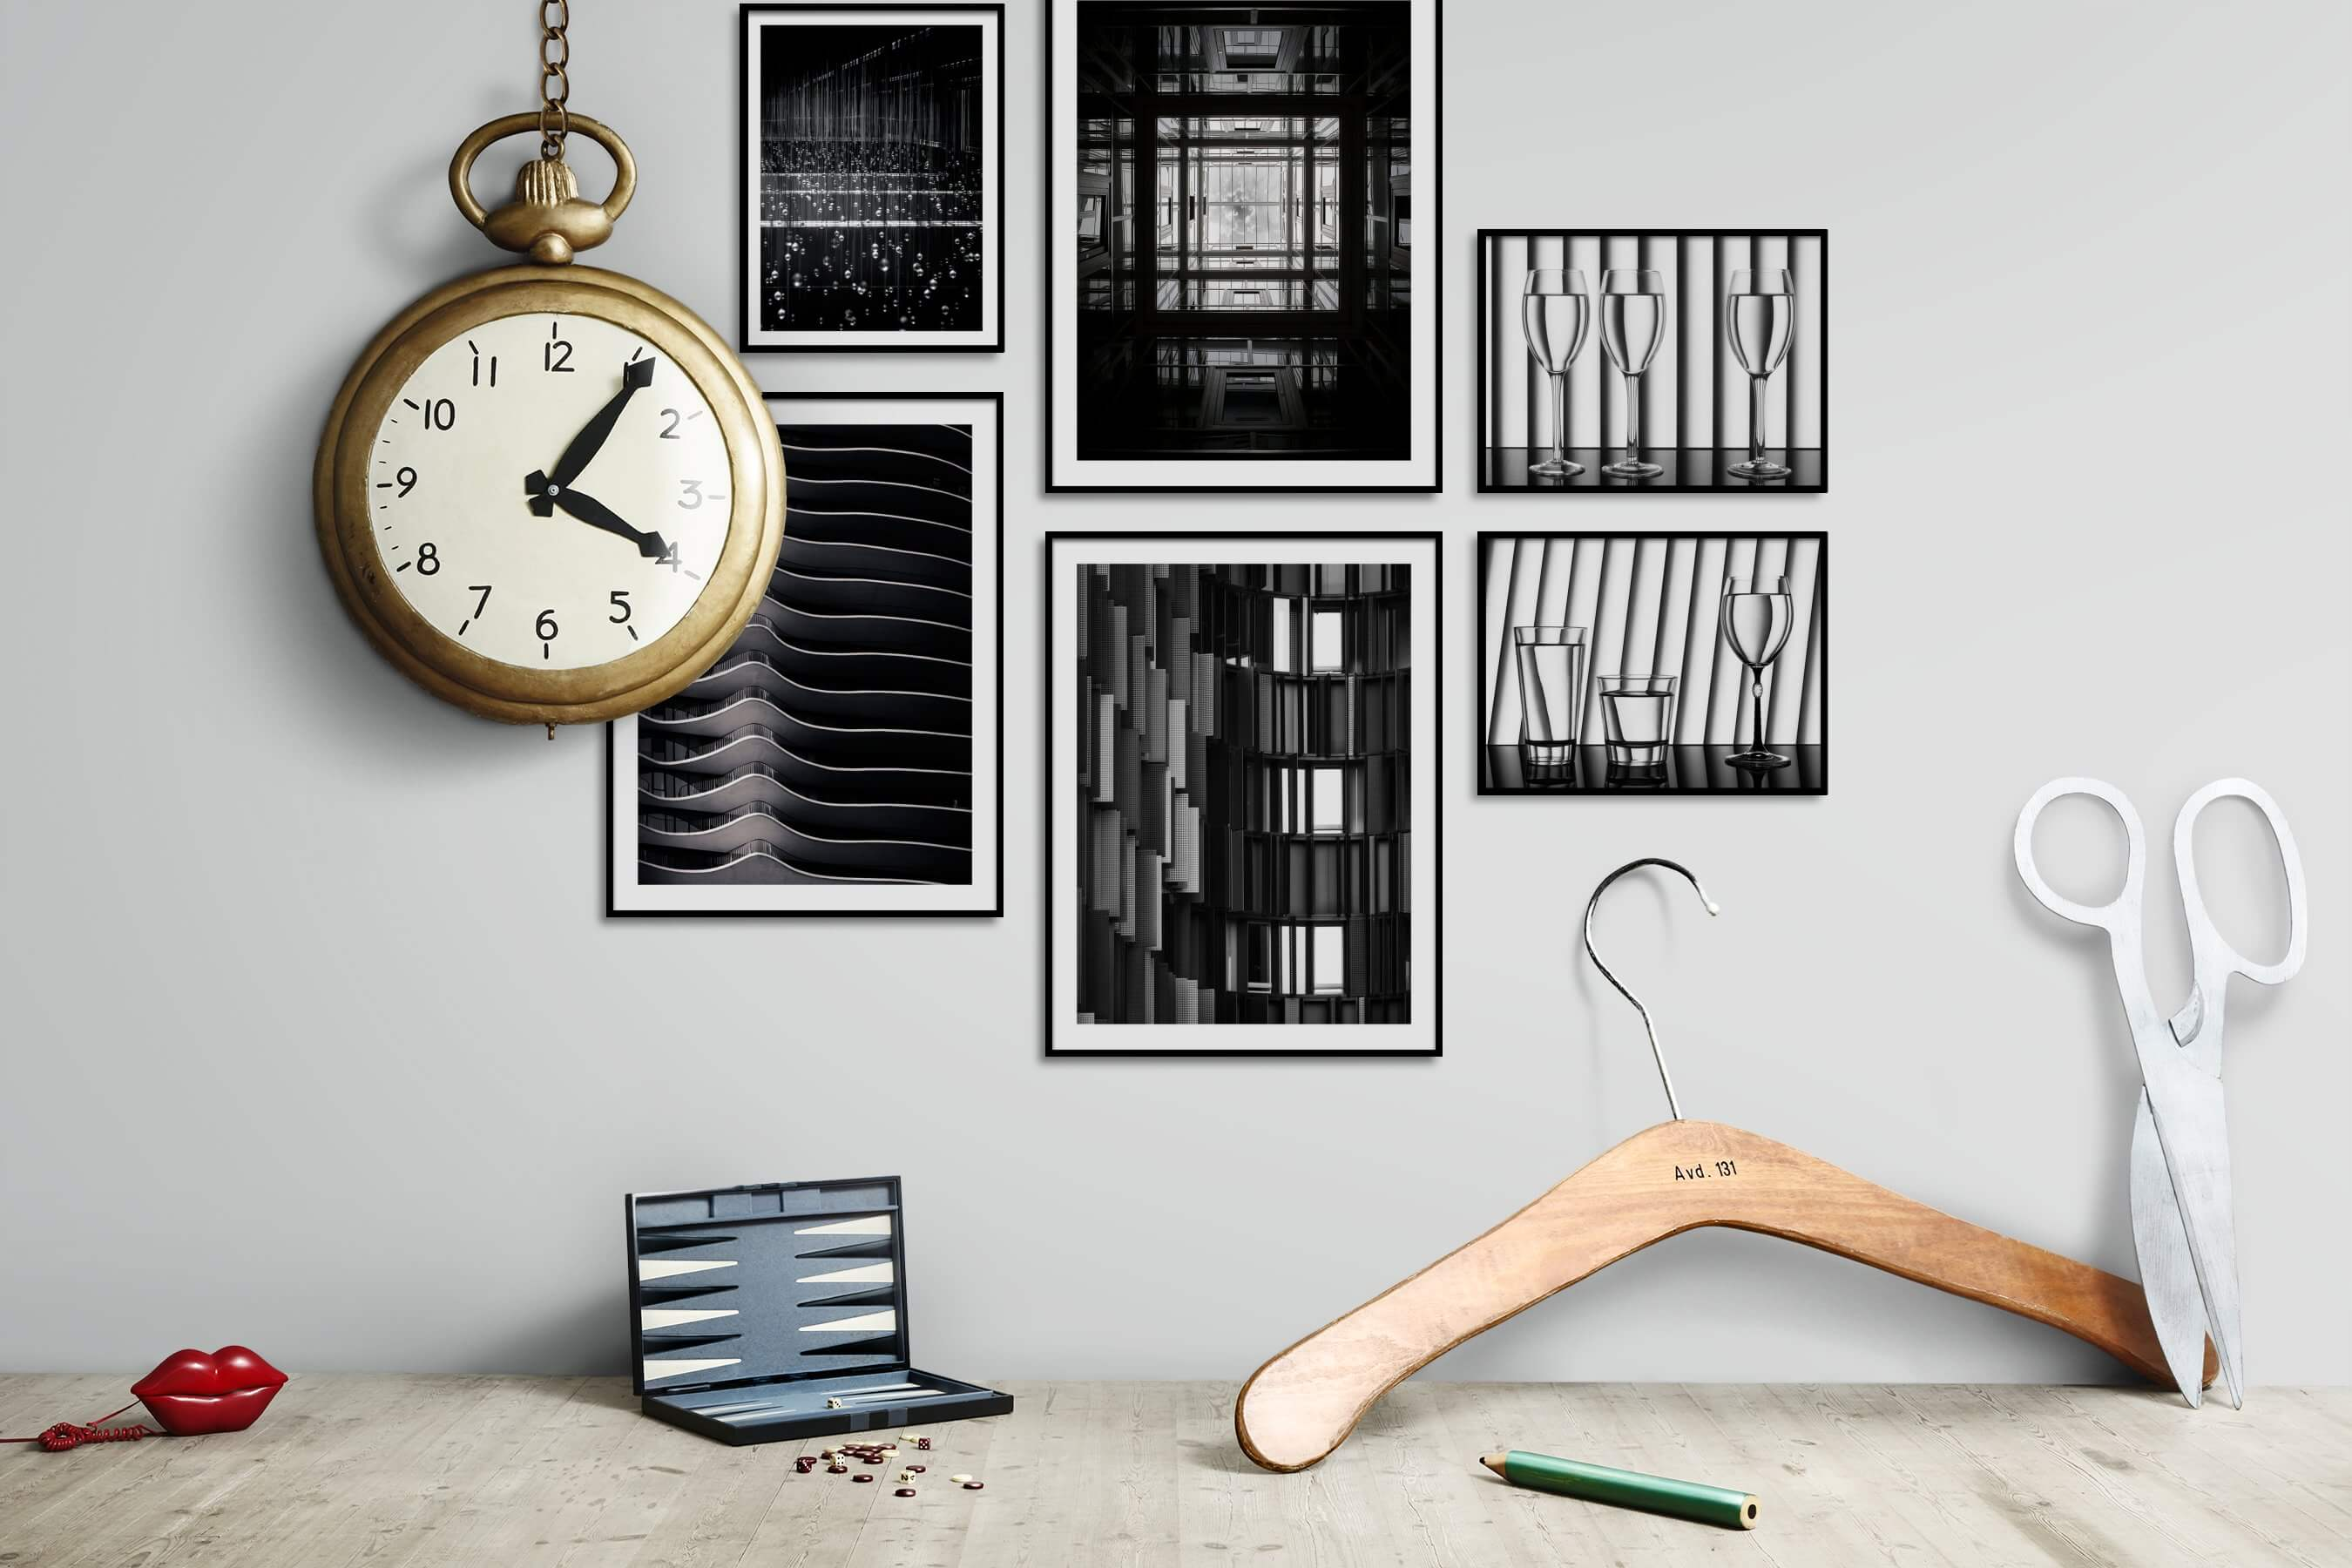 Gallery wall idea with six framed pictures arranged on a wall depicting Black & White, For the Moderate, For the Maximalist, and City Life